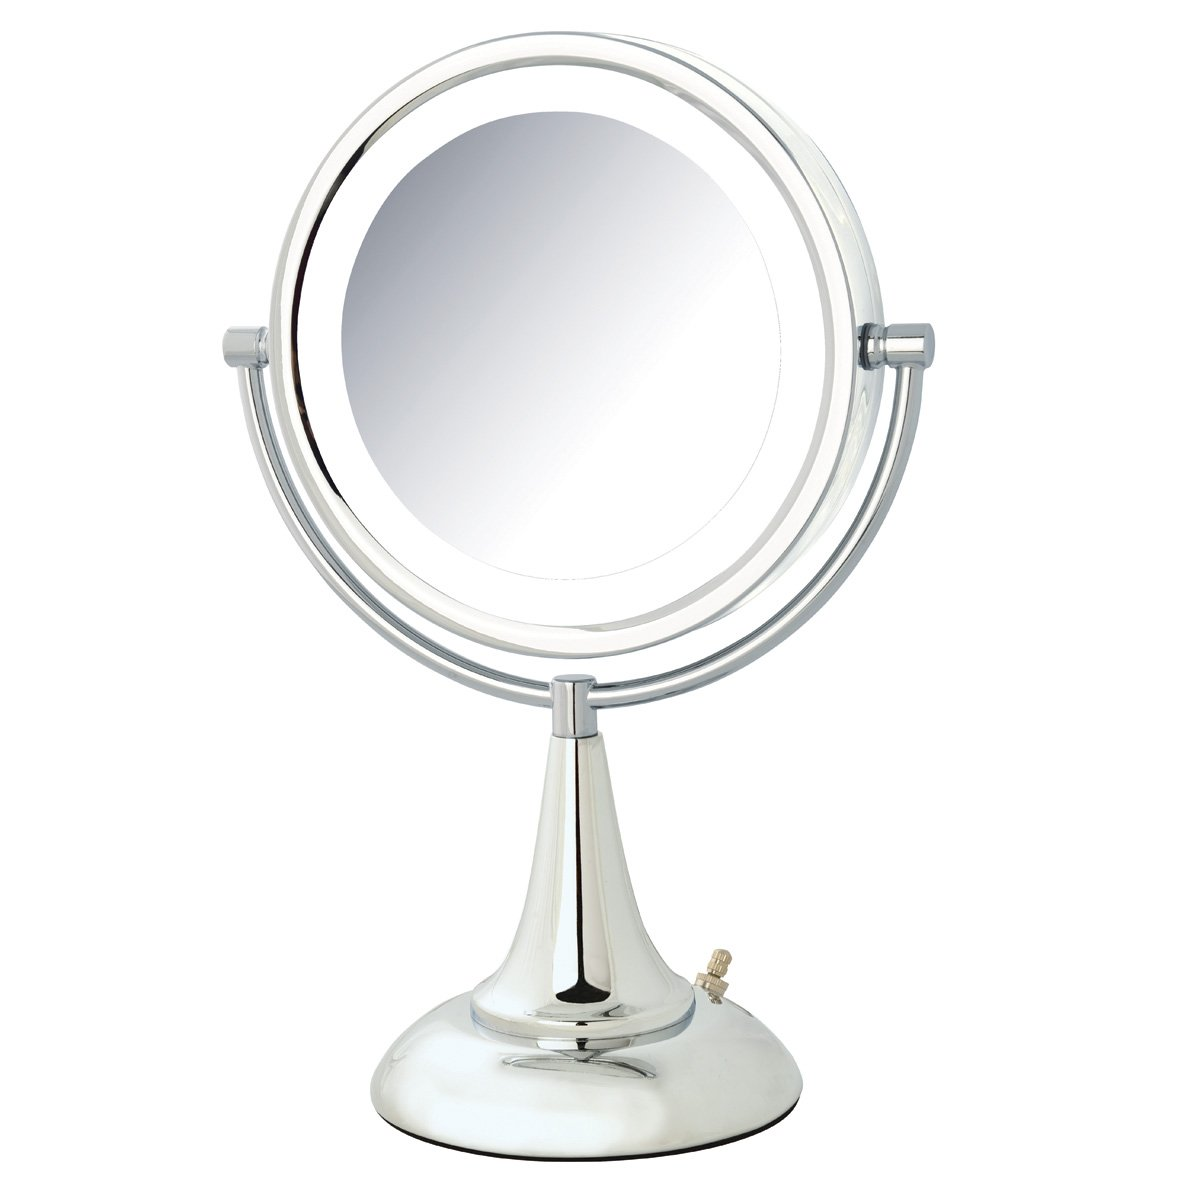 Jerdon HL8510NL Tabletop Two-Sided Swivel LED Vanity Mirror with 8x Magnification Nickel Finish, 8.5-Inch, 72-Ounce